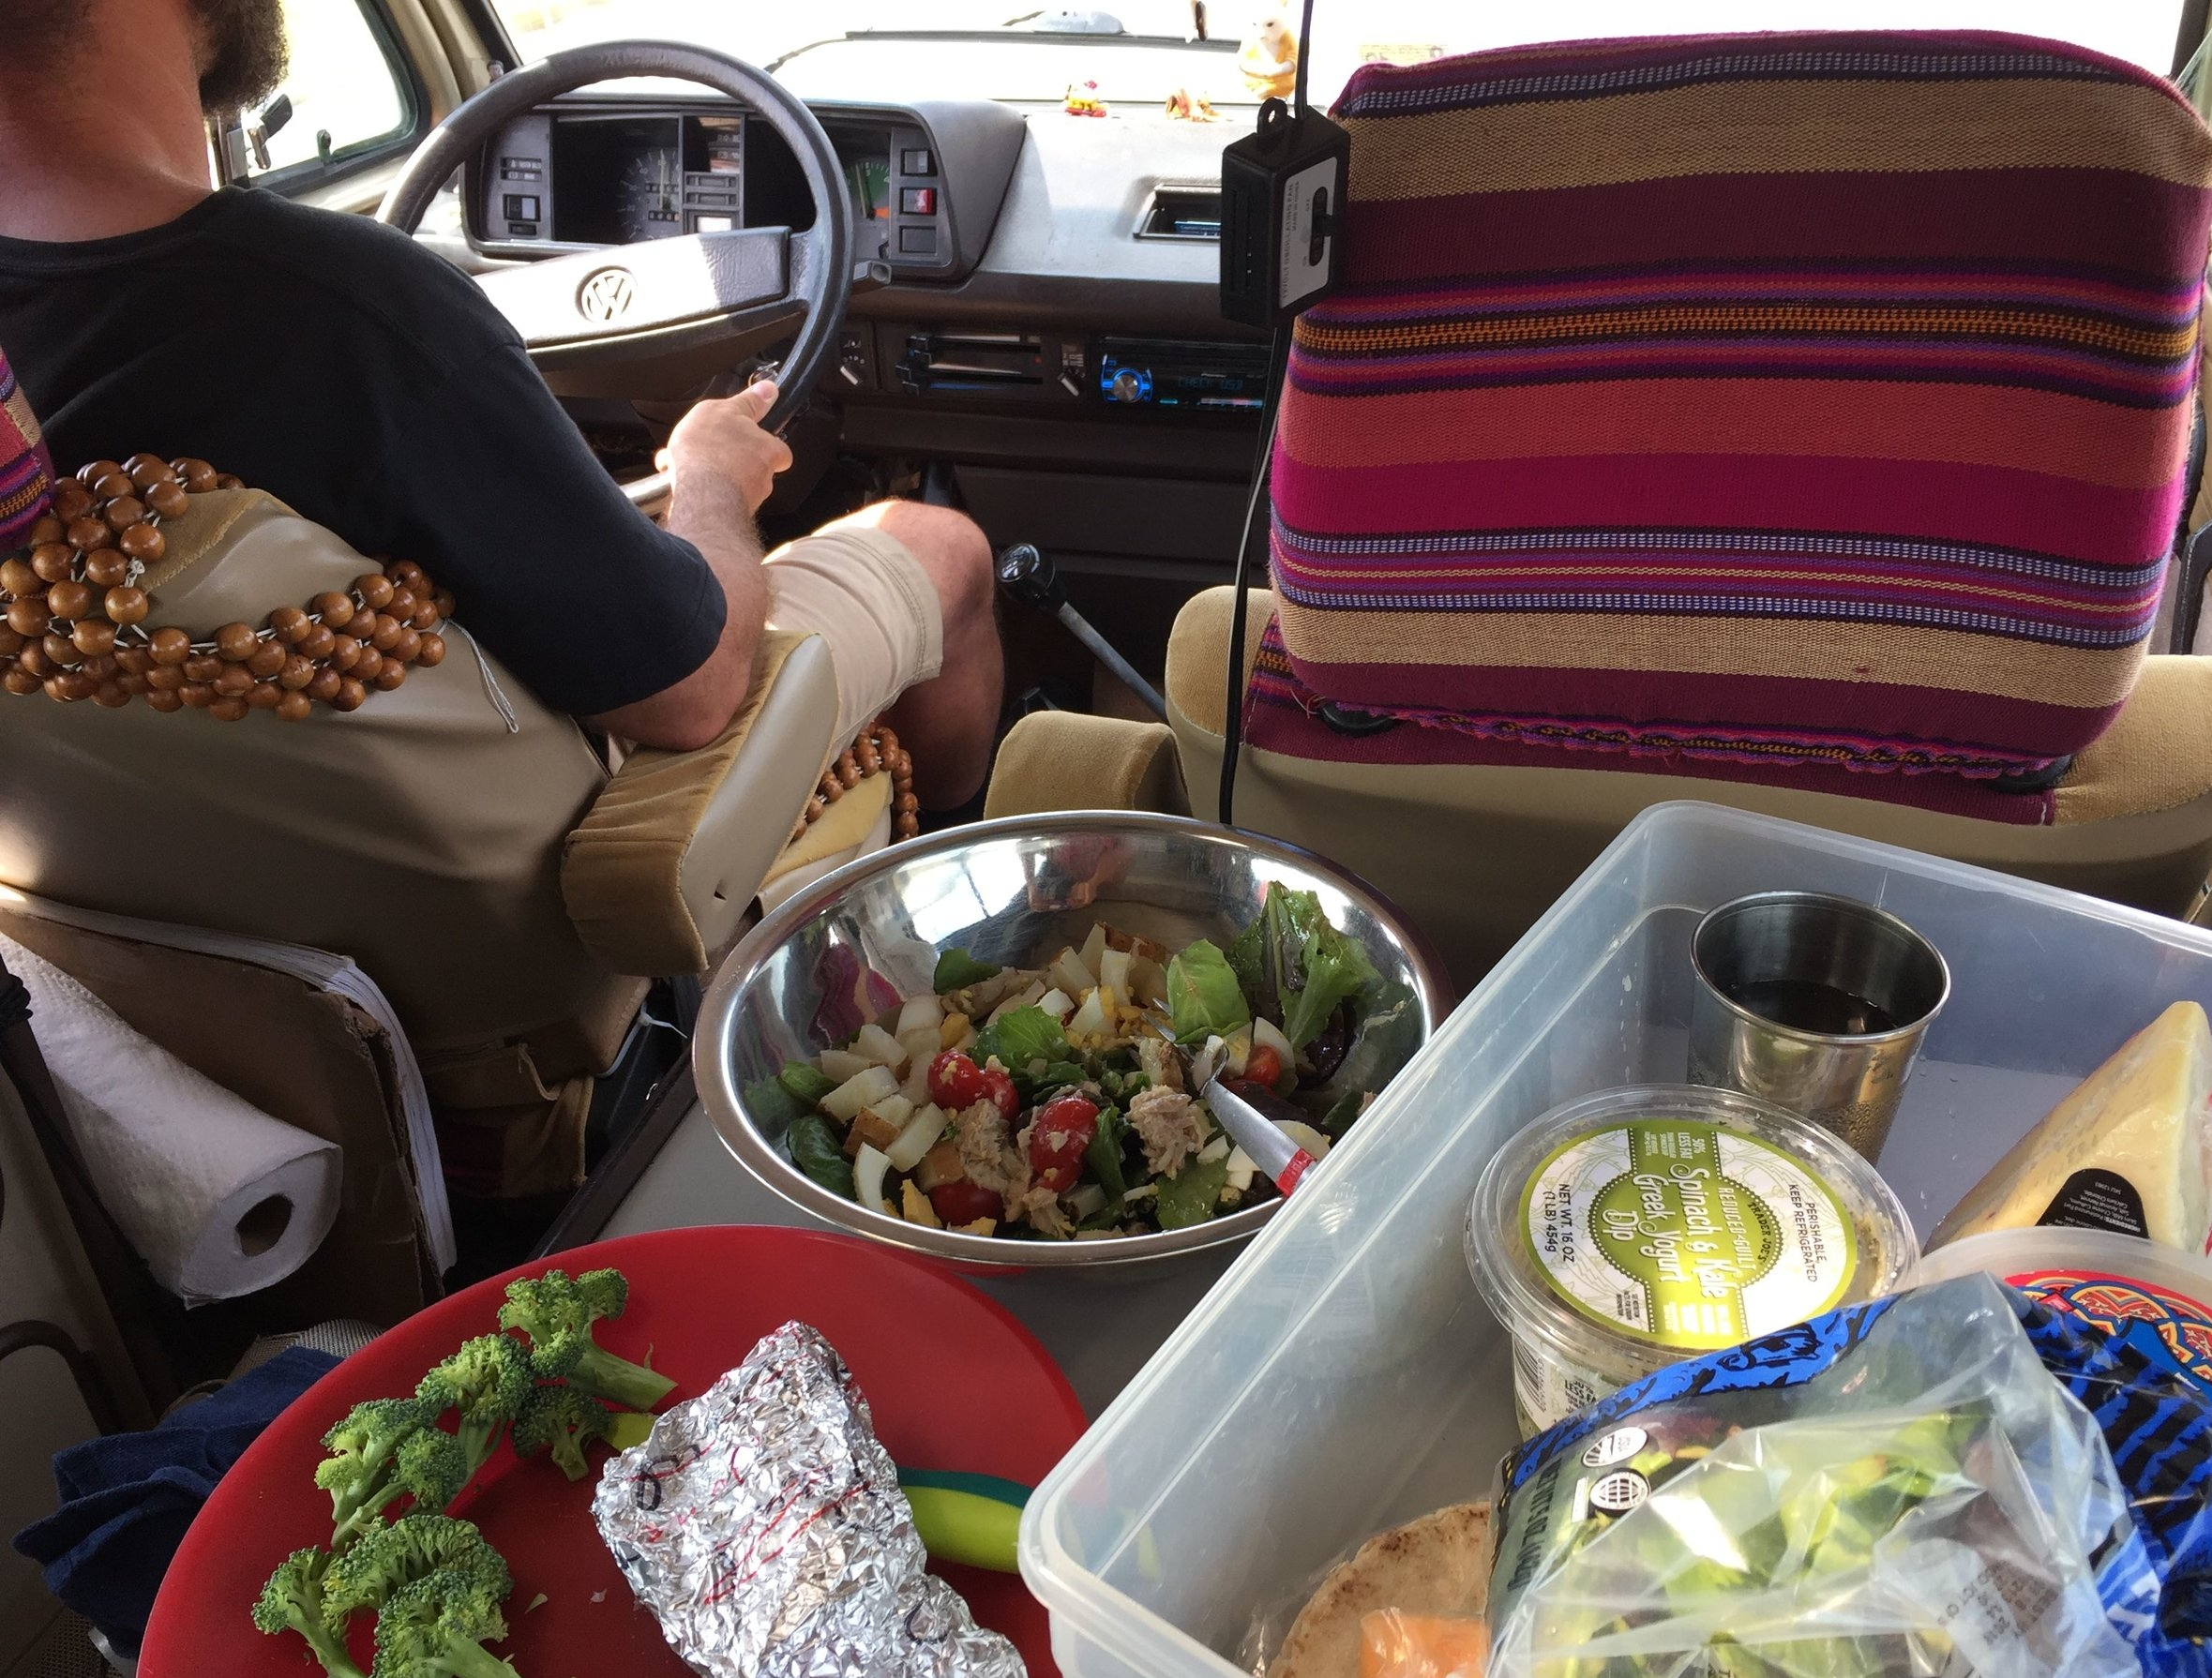 There's something more fun and tasty about eating a lunch that looks like this when it's prepared at 45mph.